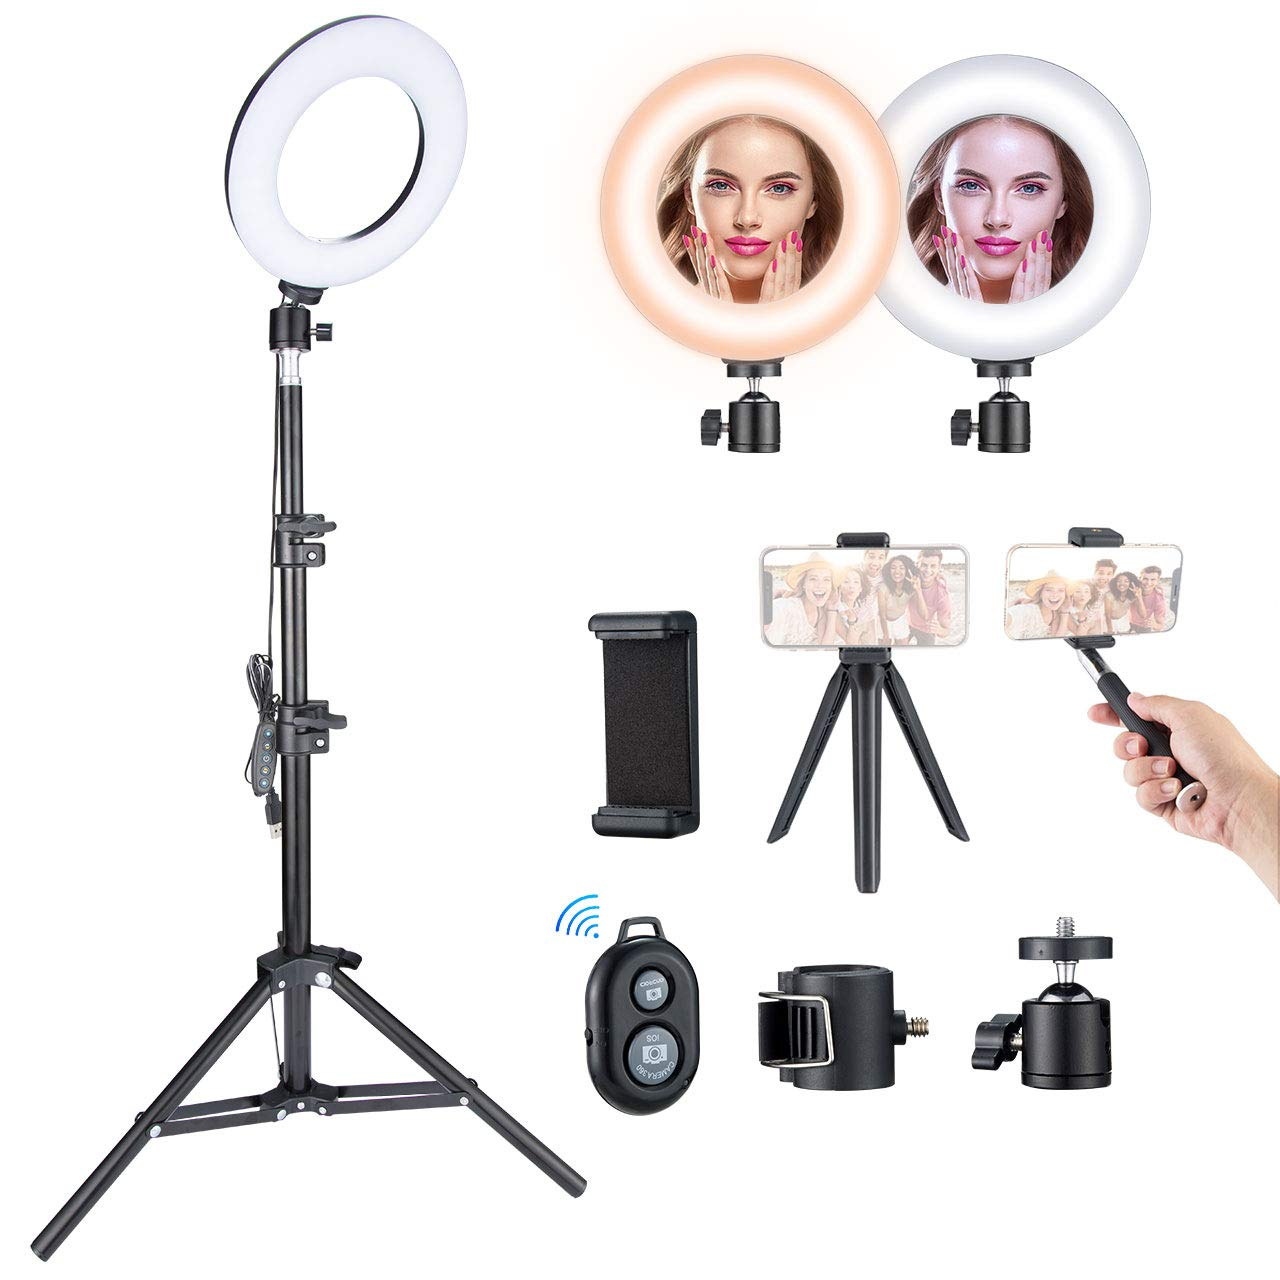 VicTsing Ring Light Kit 6.3'' with 5 Light Modes & 5 Brightness, 3000K-6500K Dimmable LED Ring Light with Desktop Tripod/Adjustable Tripod Stand/Selfie Stick for Makeup Camera Shooting YouTube Video by VicTsing